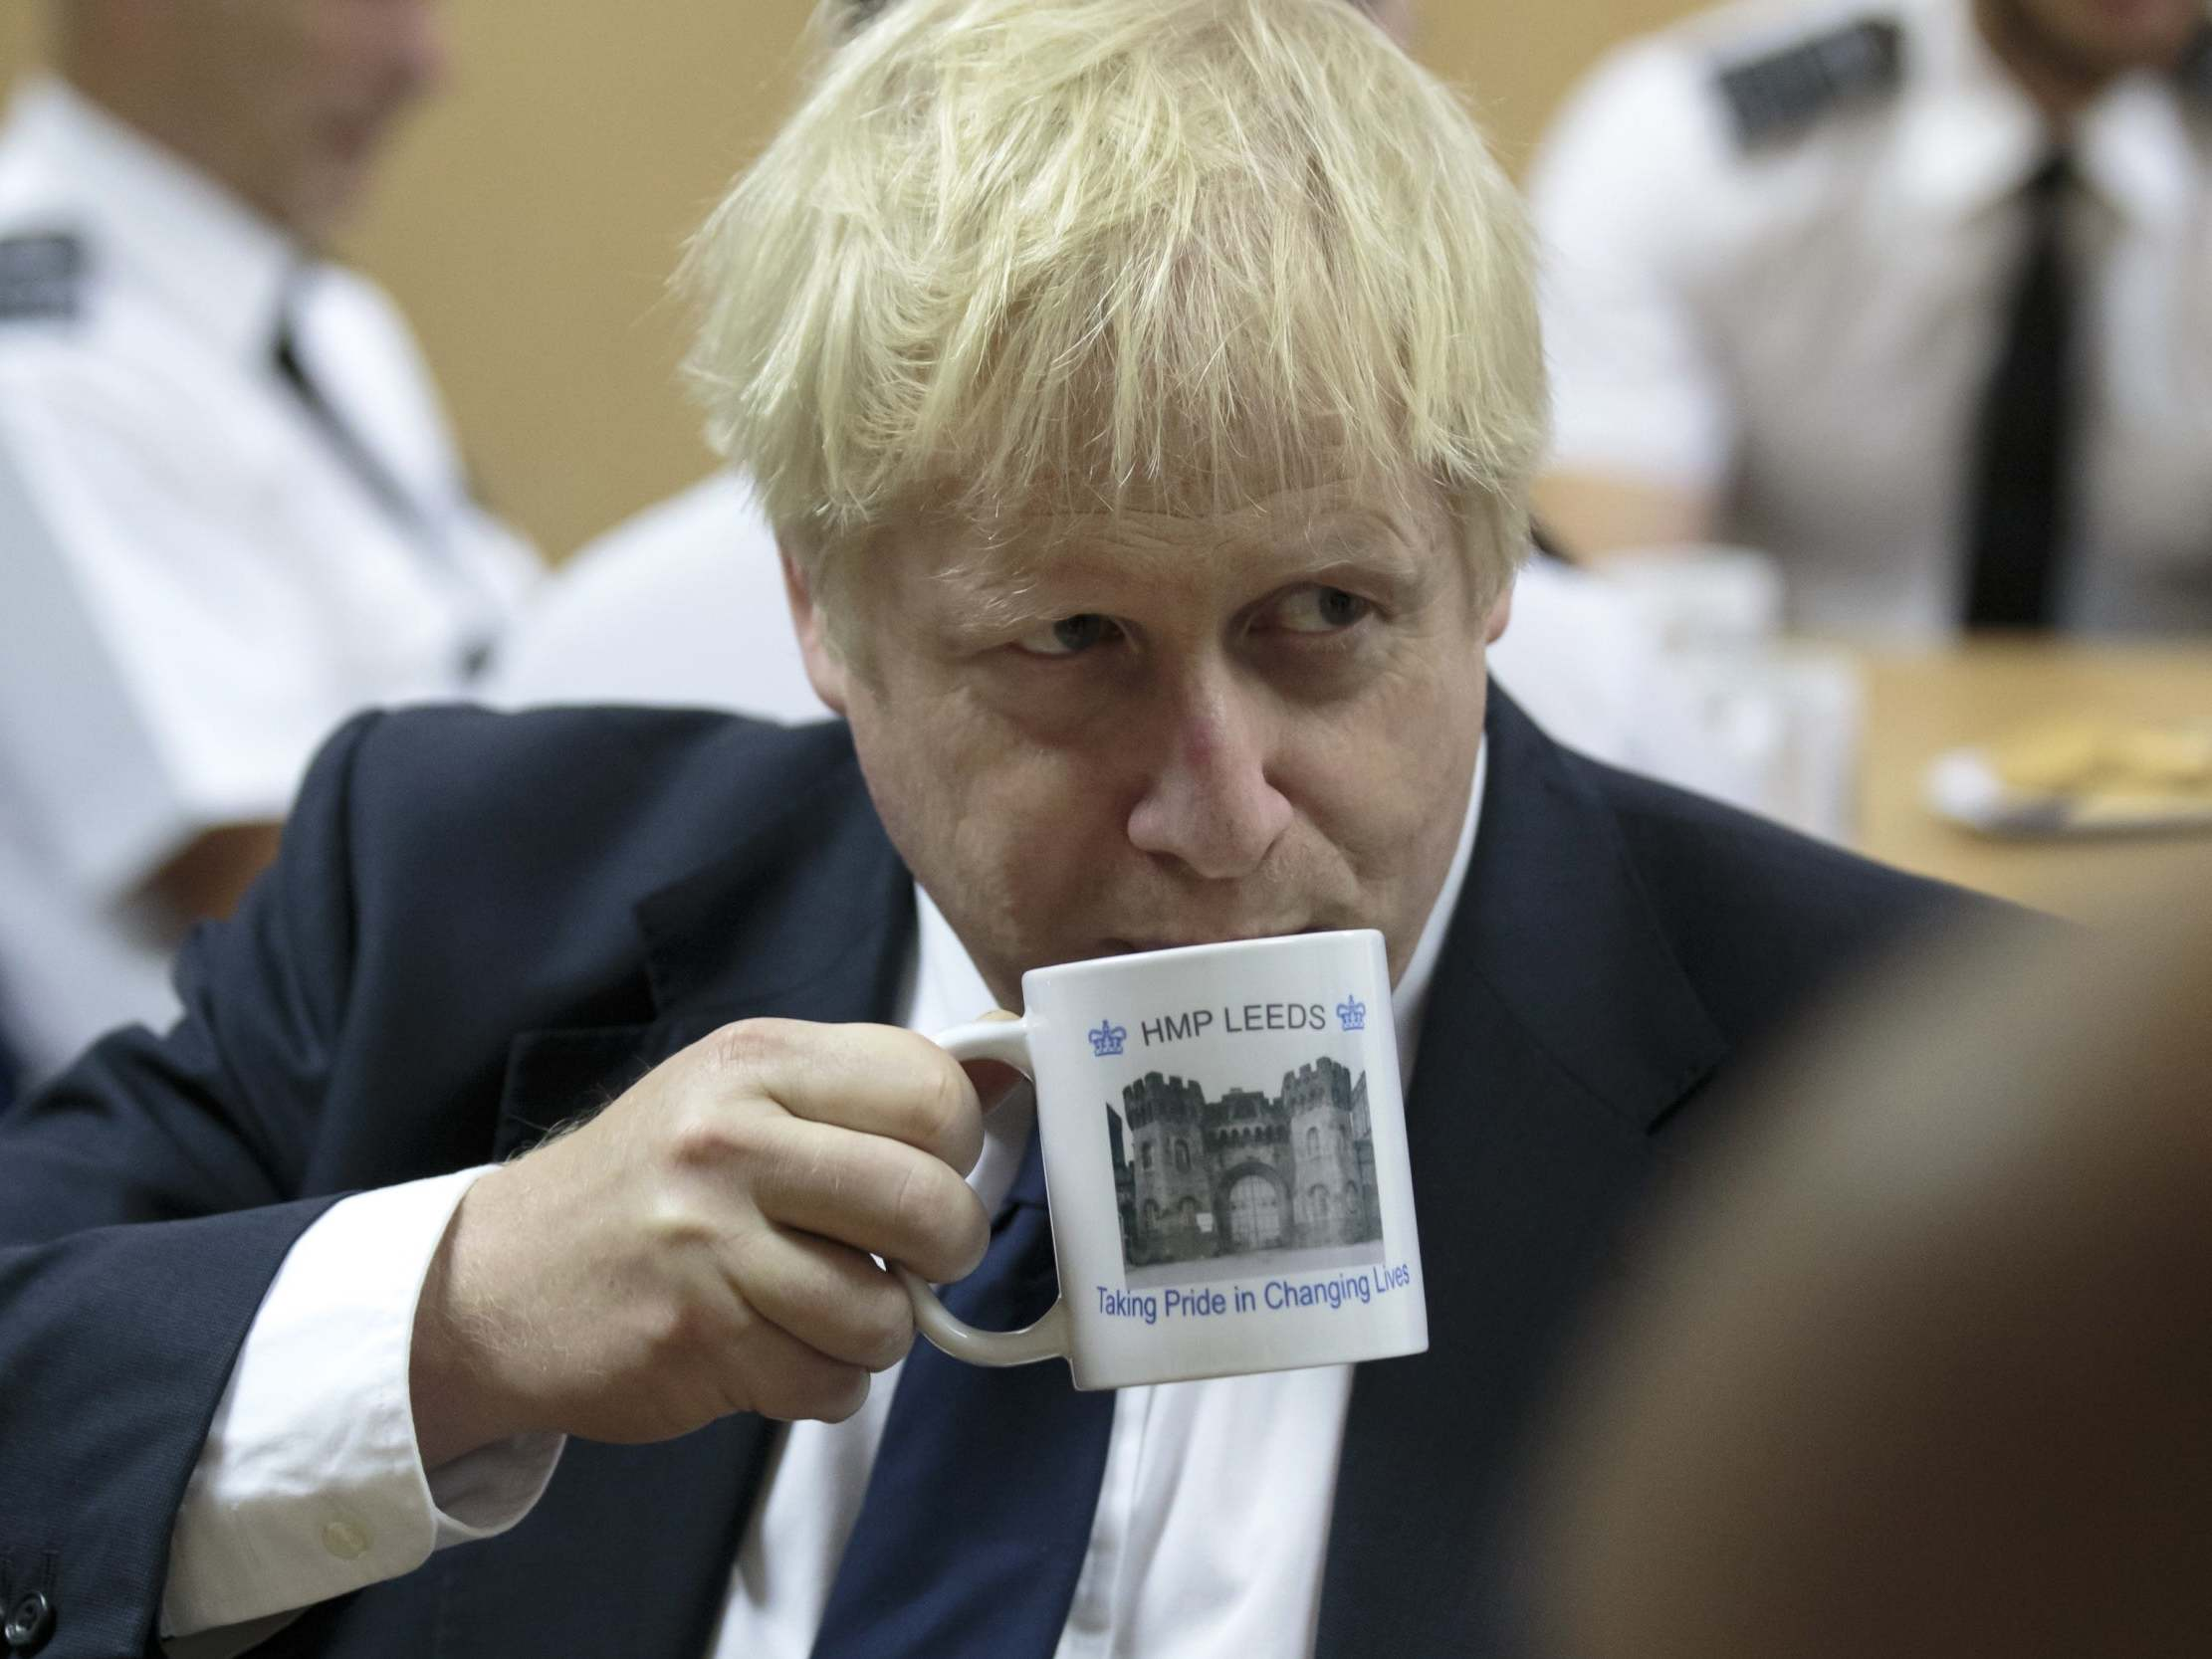 Brexit: Voters firmly reject Boris Johnson's plan to crash out of EU with no deal, poll finds